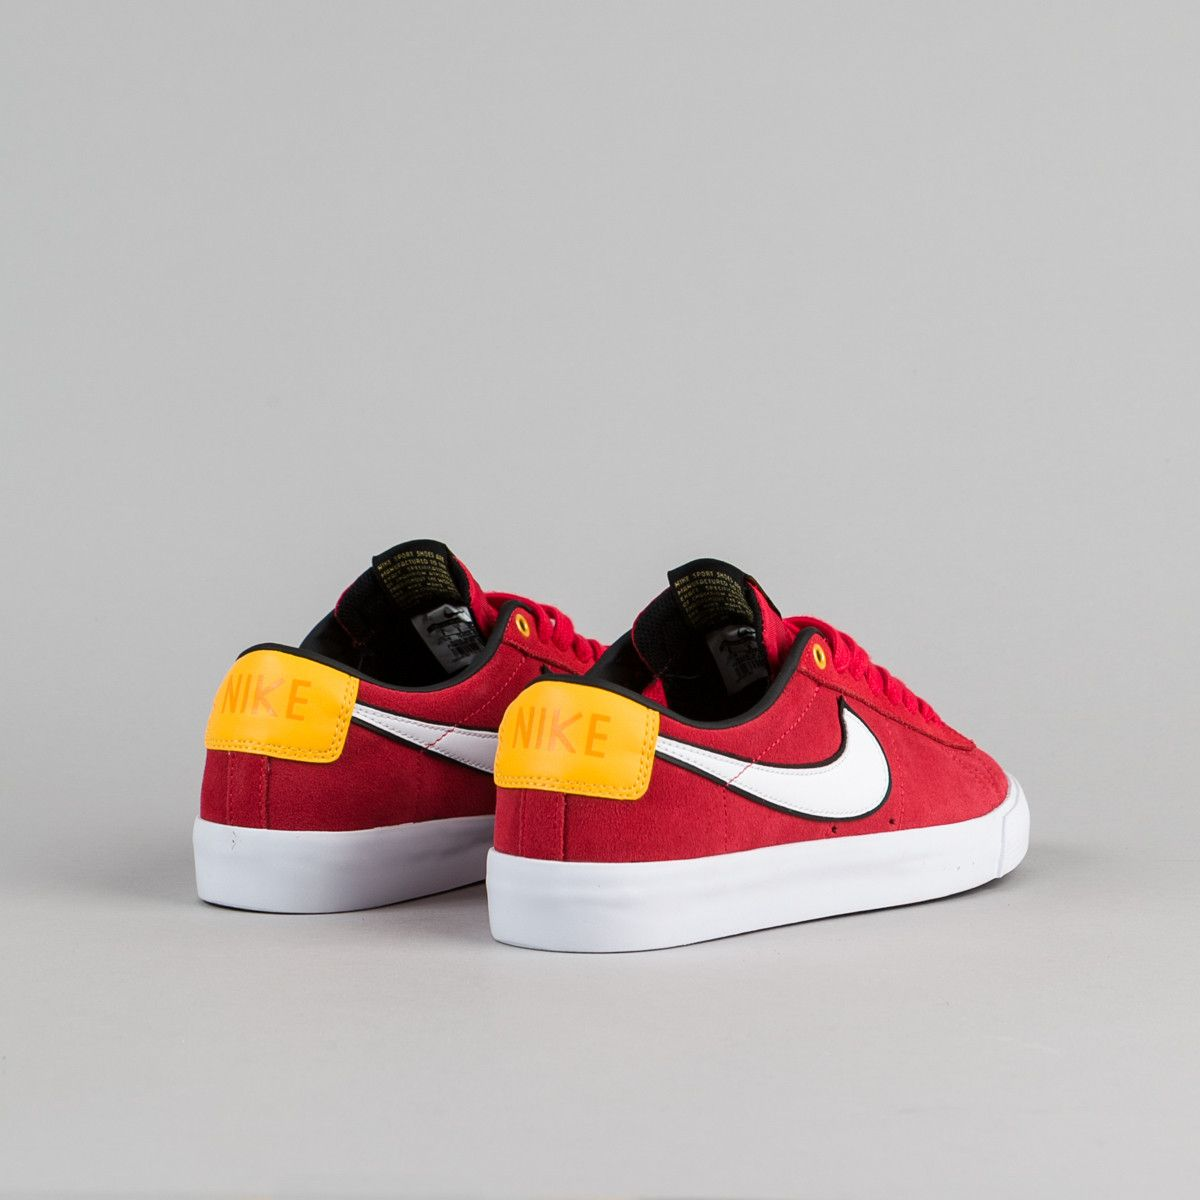 nike sb blazer low red